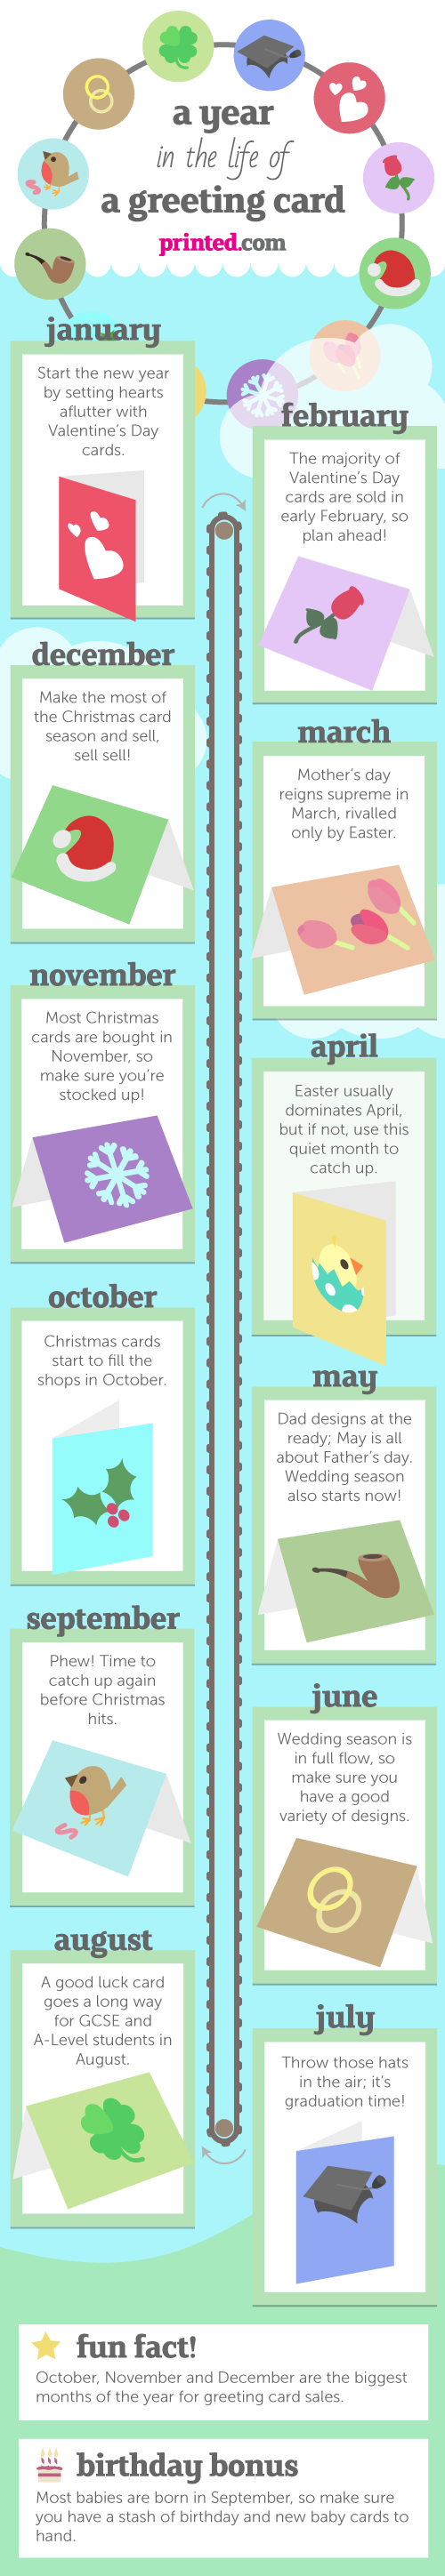 Greeting card design calendar